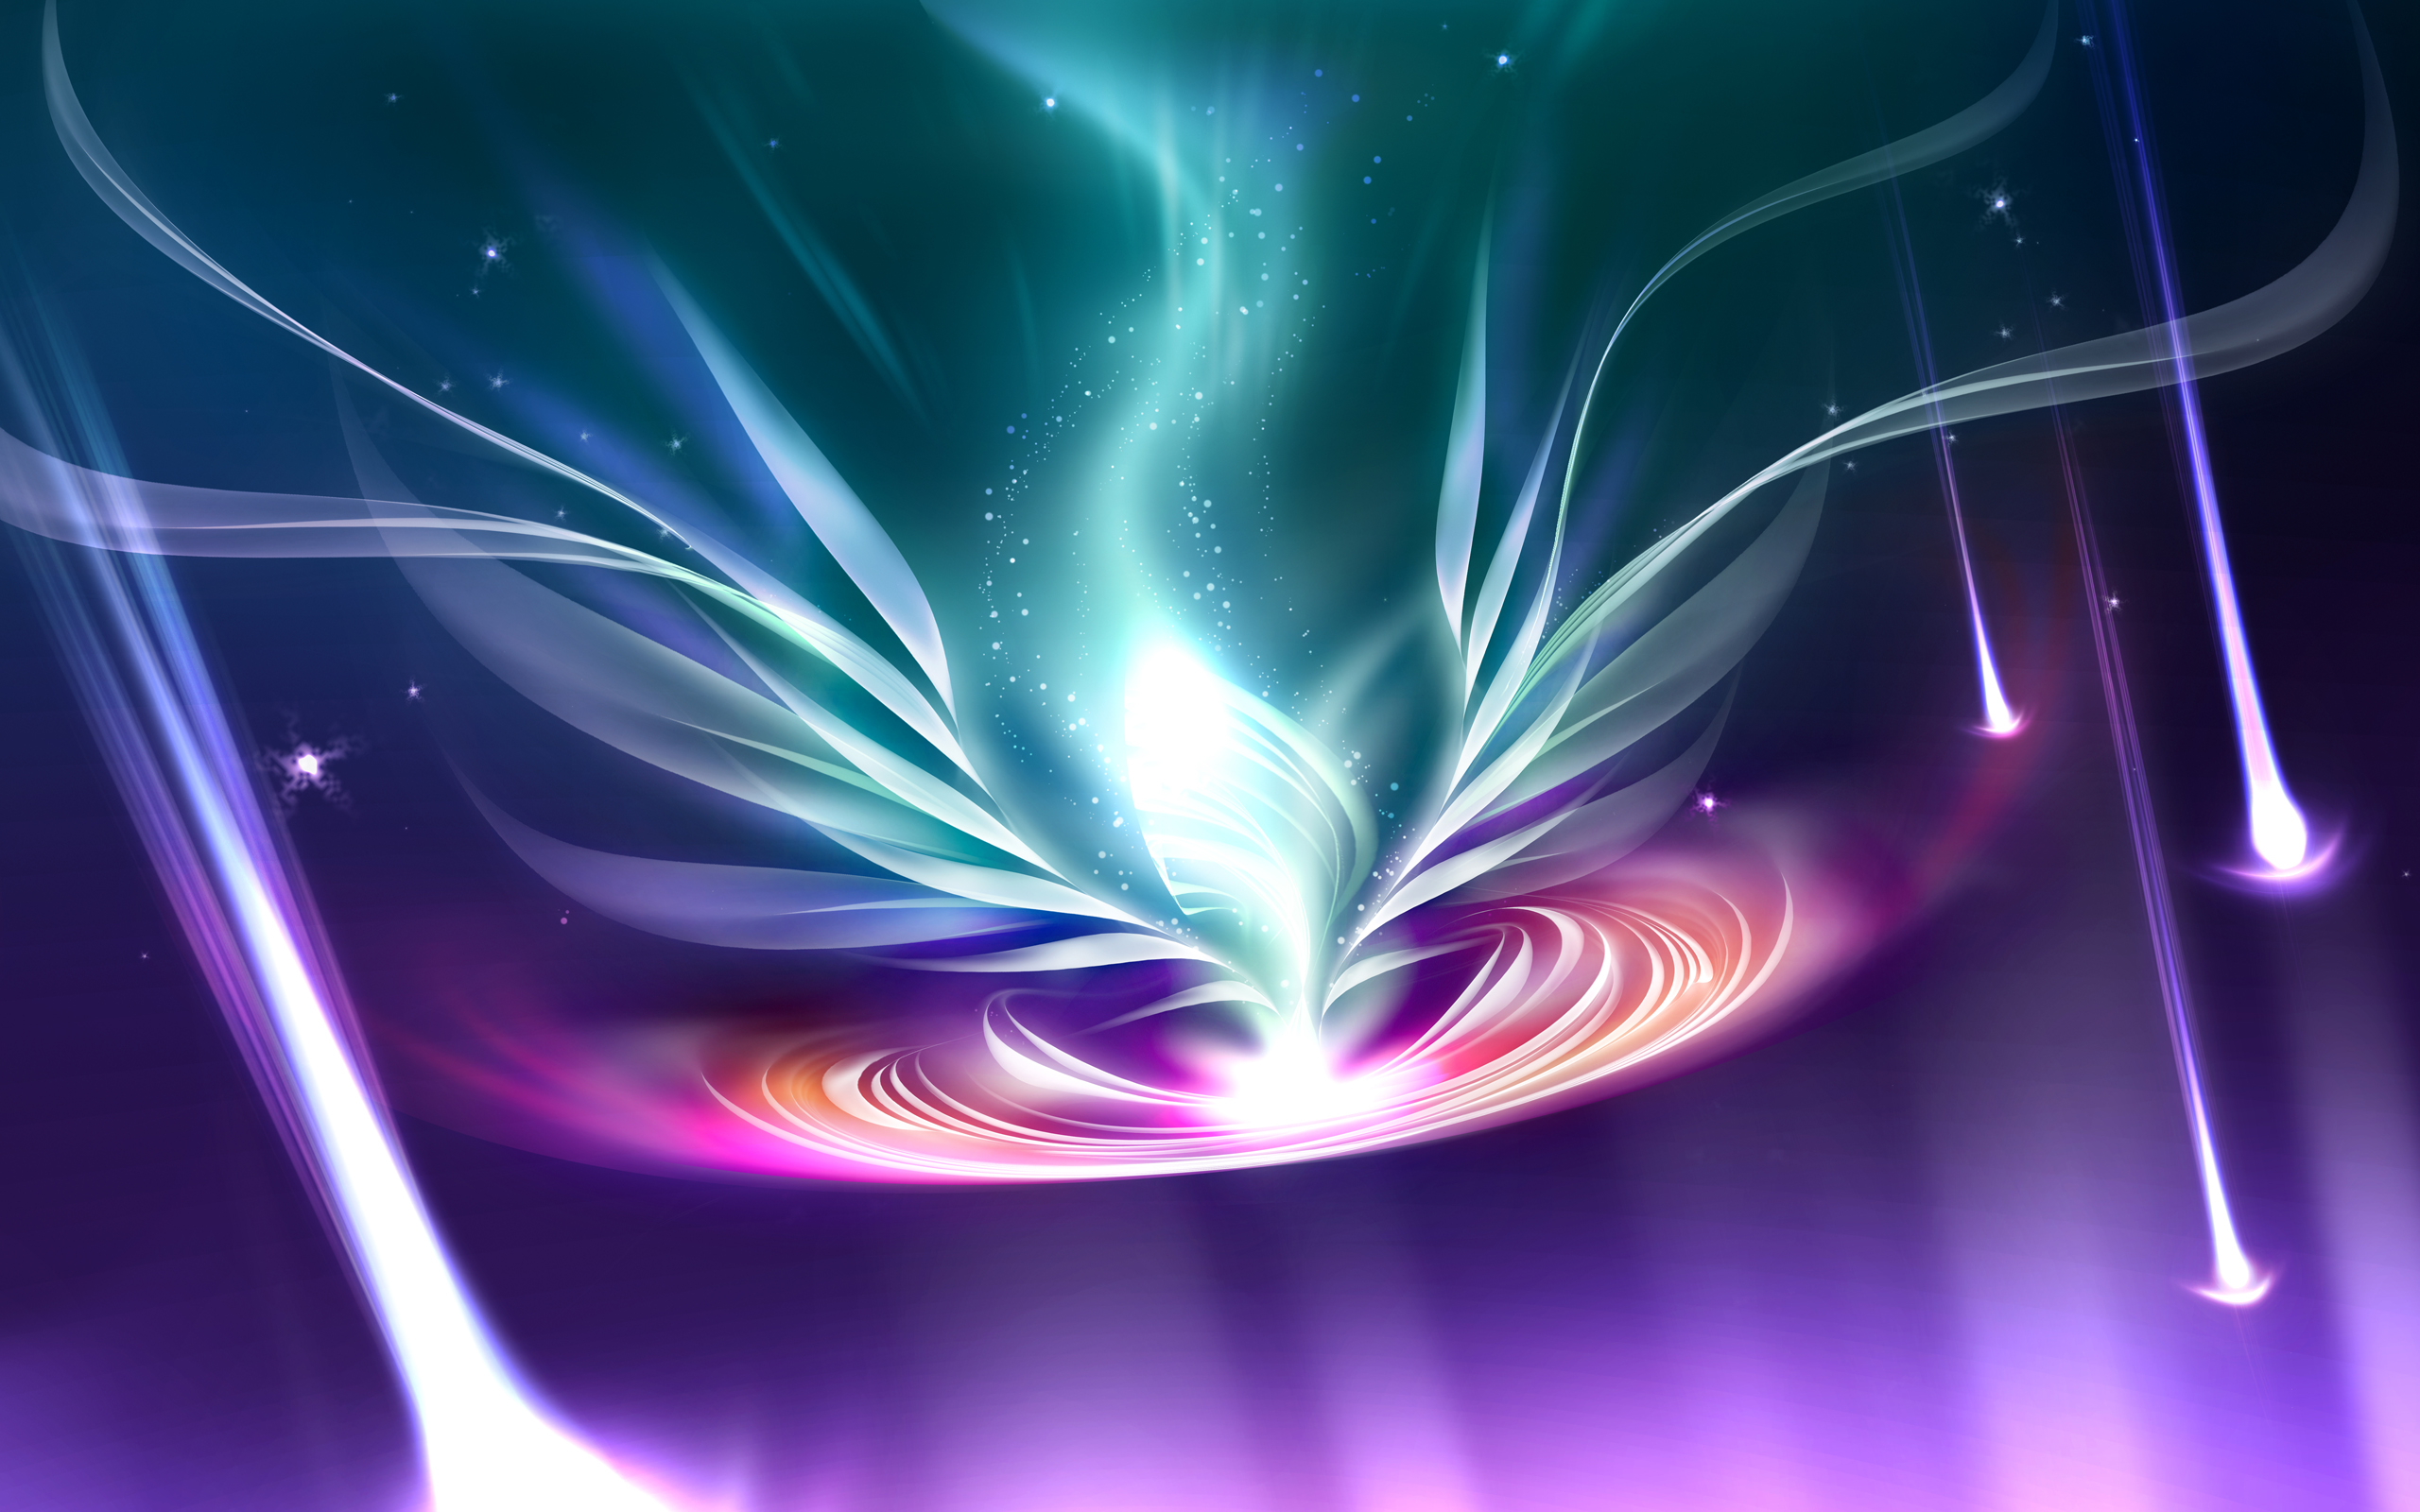 220 digital art hd wallpapers | background images - wallpaper abyss